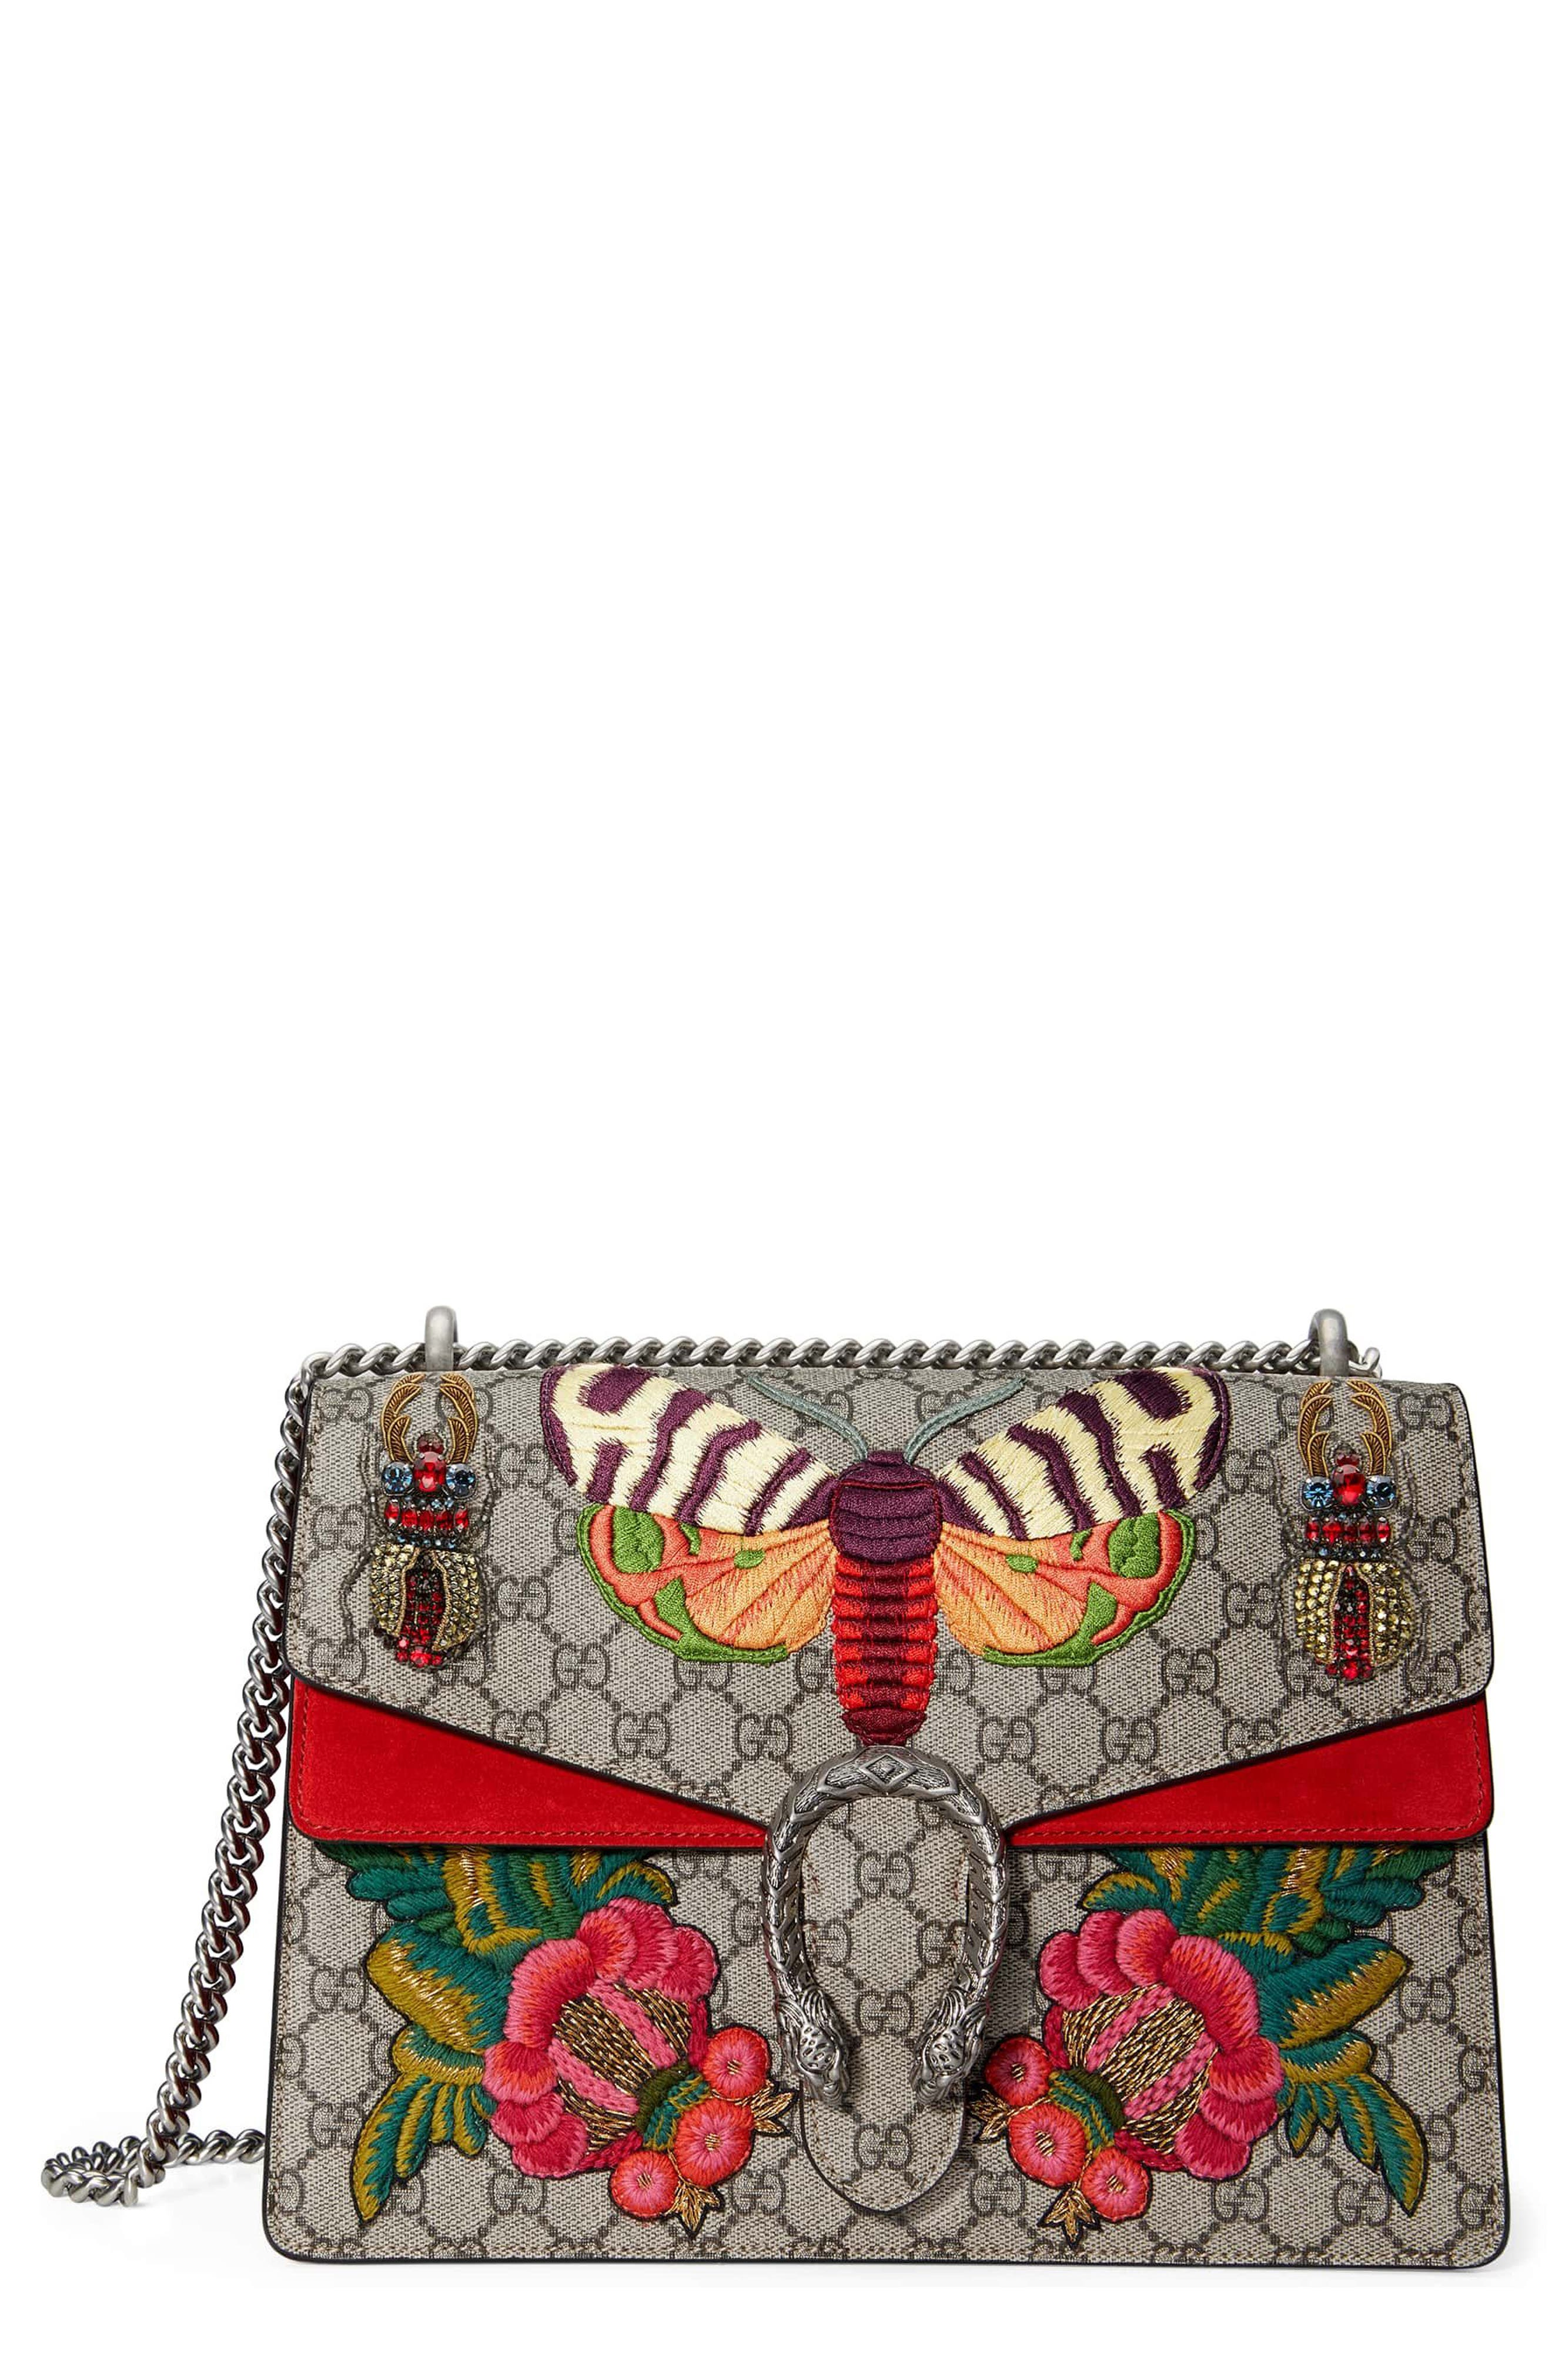 GUCCI,                             Medium Dionysus Embroidered GG Supreme Canvas & Suede Shoulder Bag,                             Main thumbnail 1, color,                             280